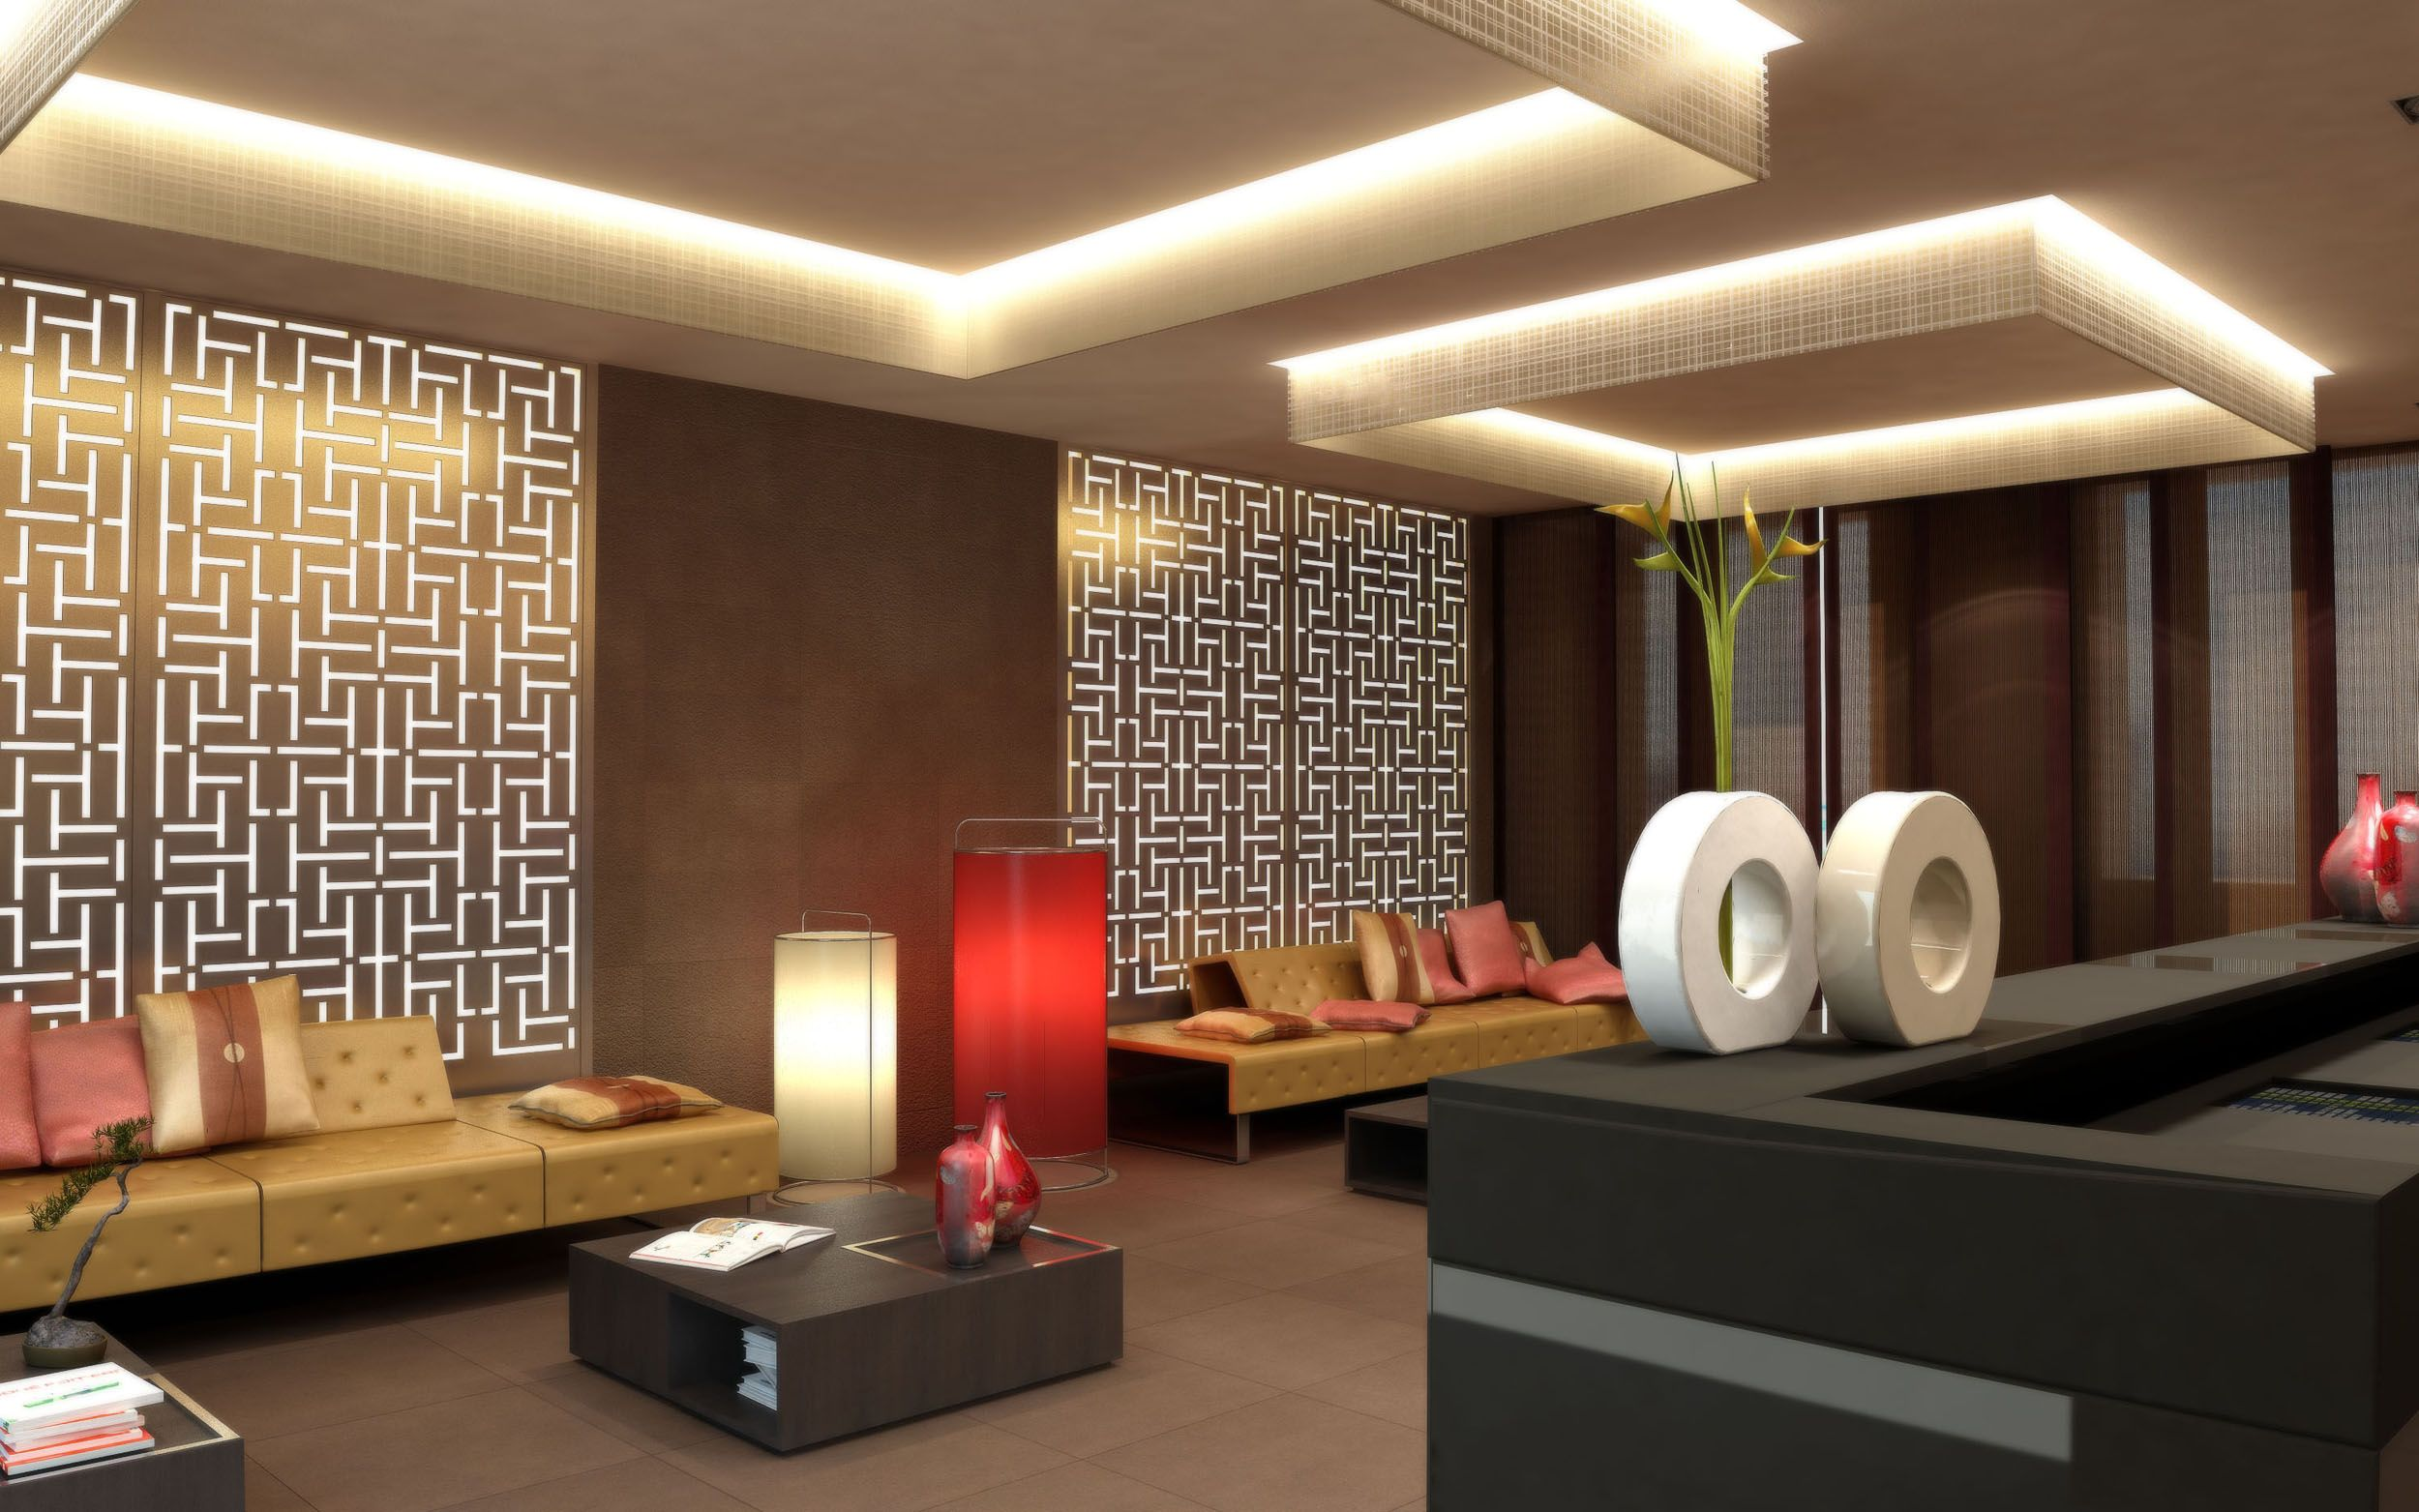 Chinese interior design images chinese interior design for Interior designer